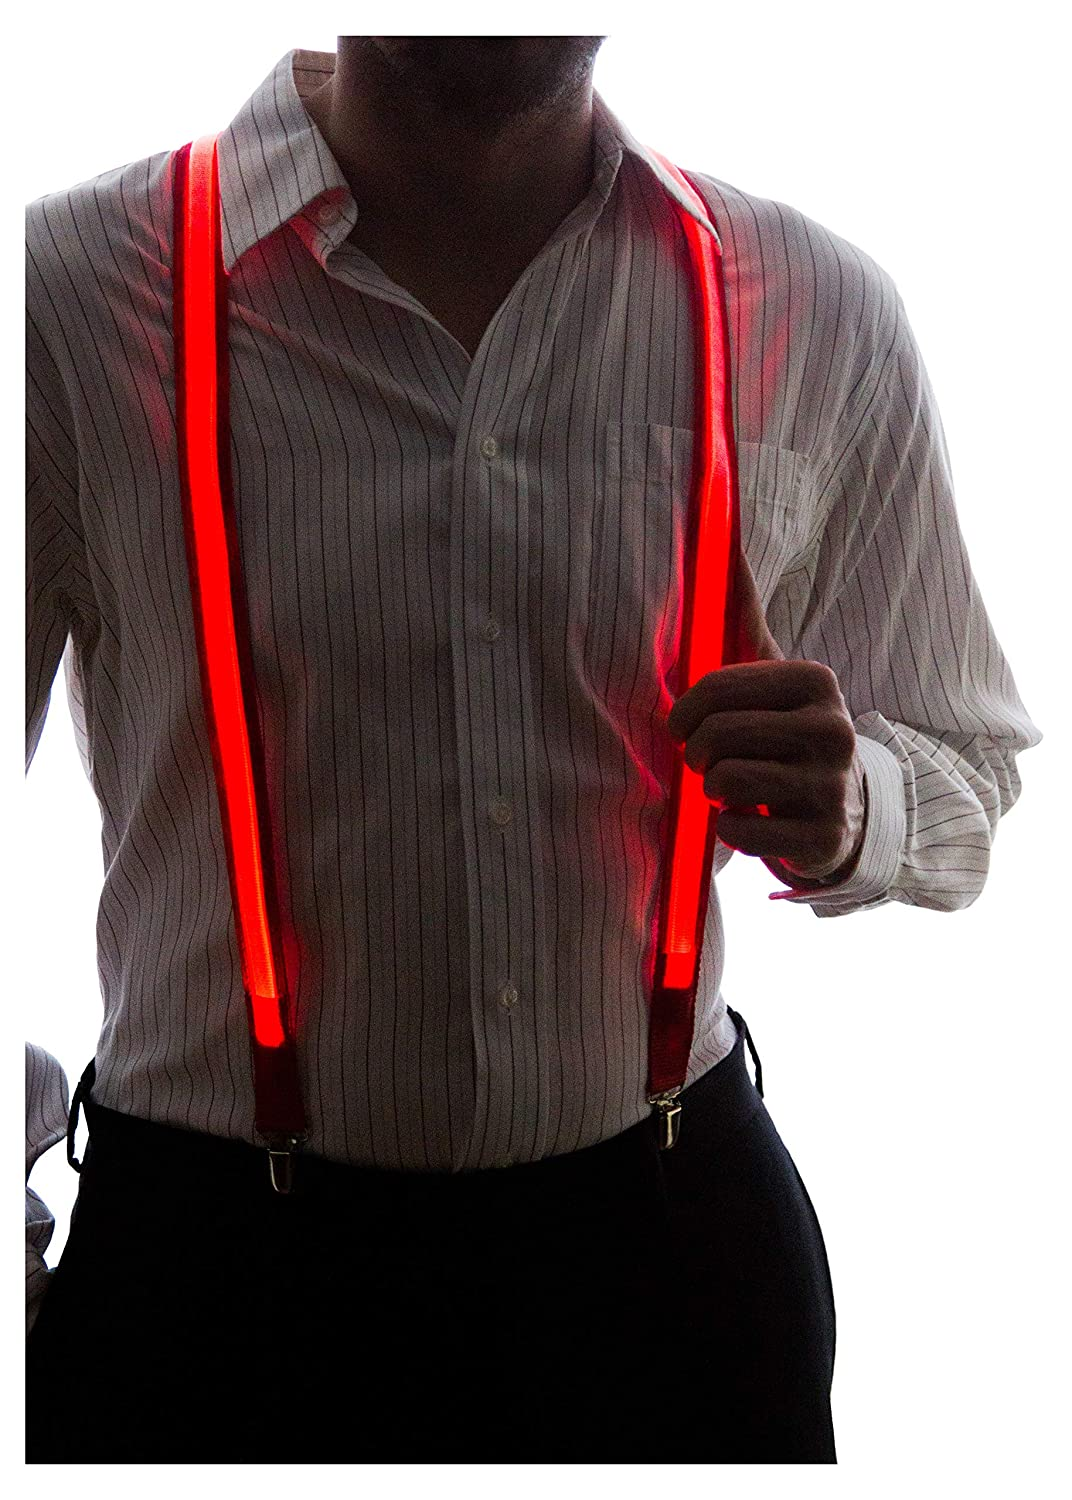 Neon Nightlife Light Up LED Suspenders hommes Taille Bleu SUSPENDERS-BLUE